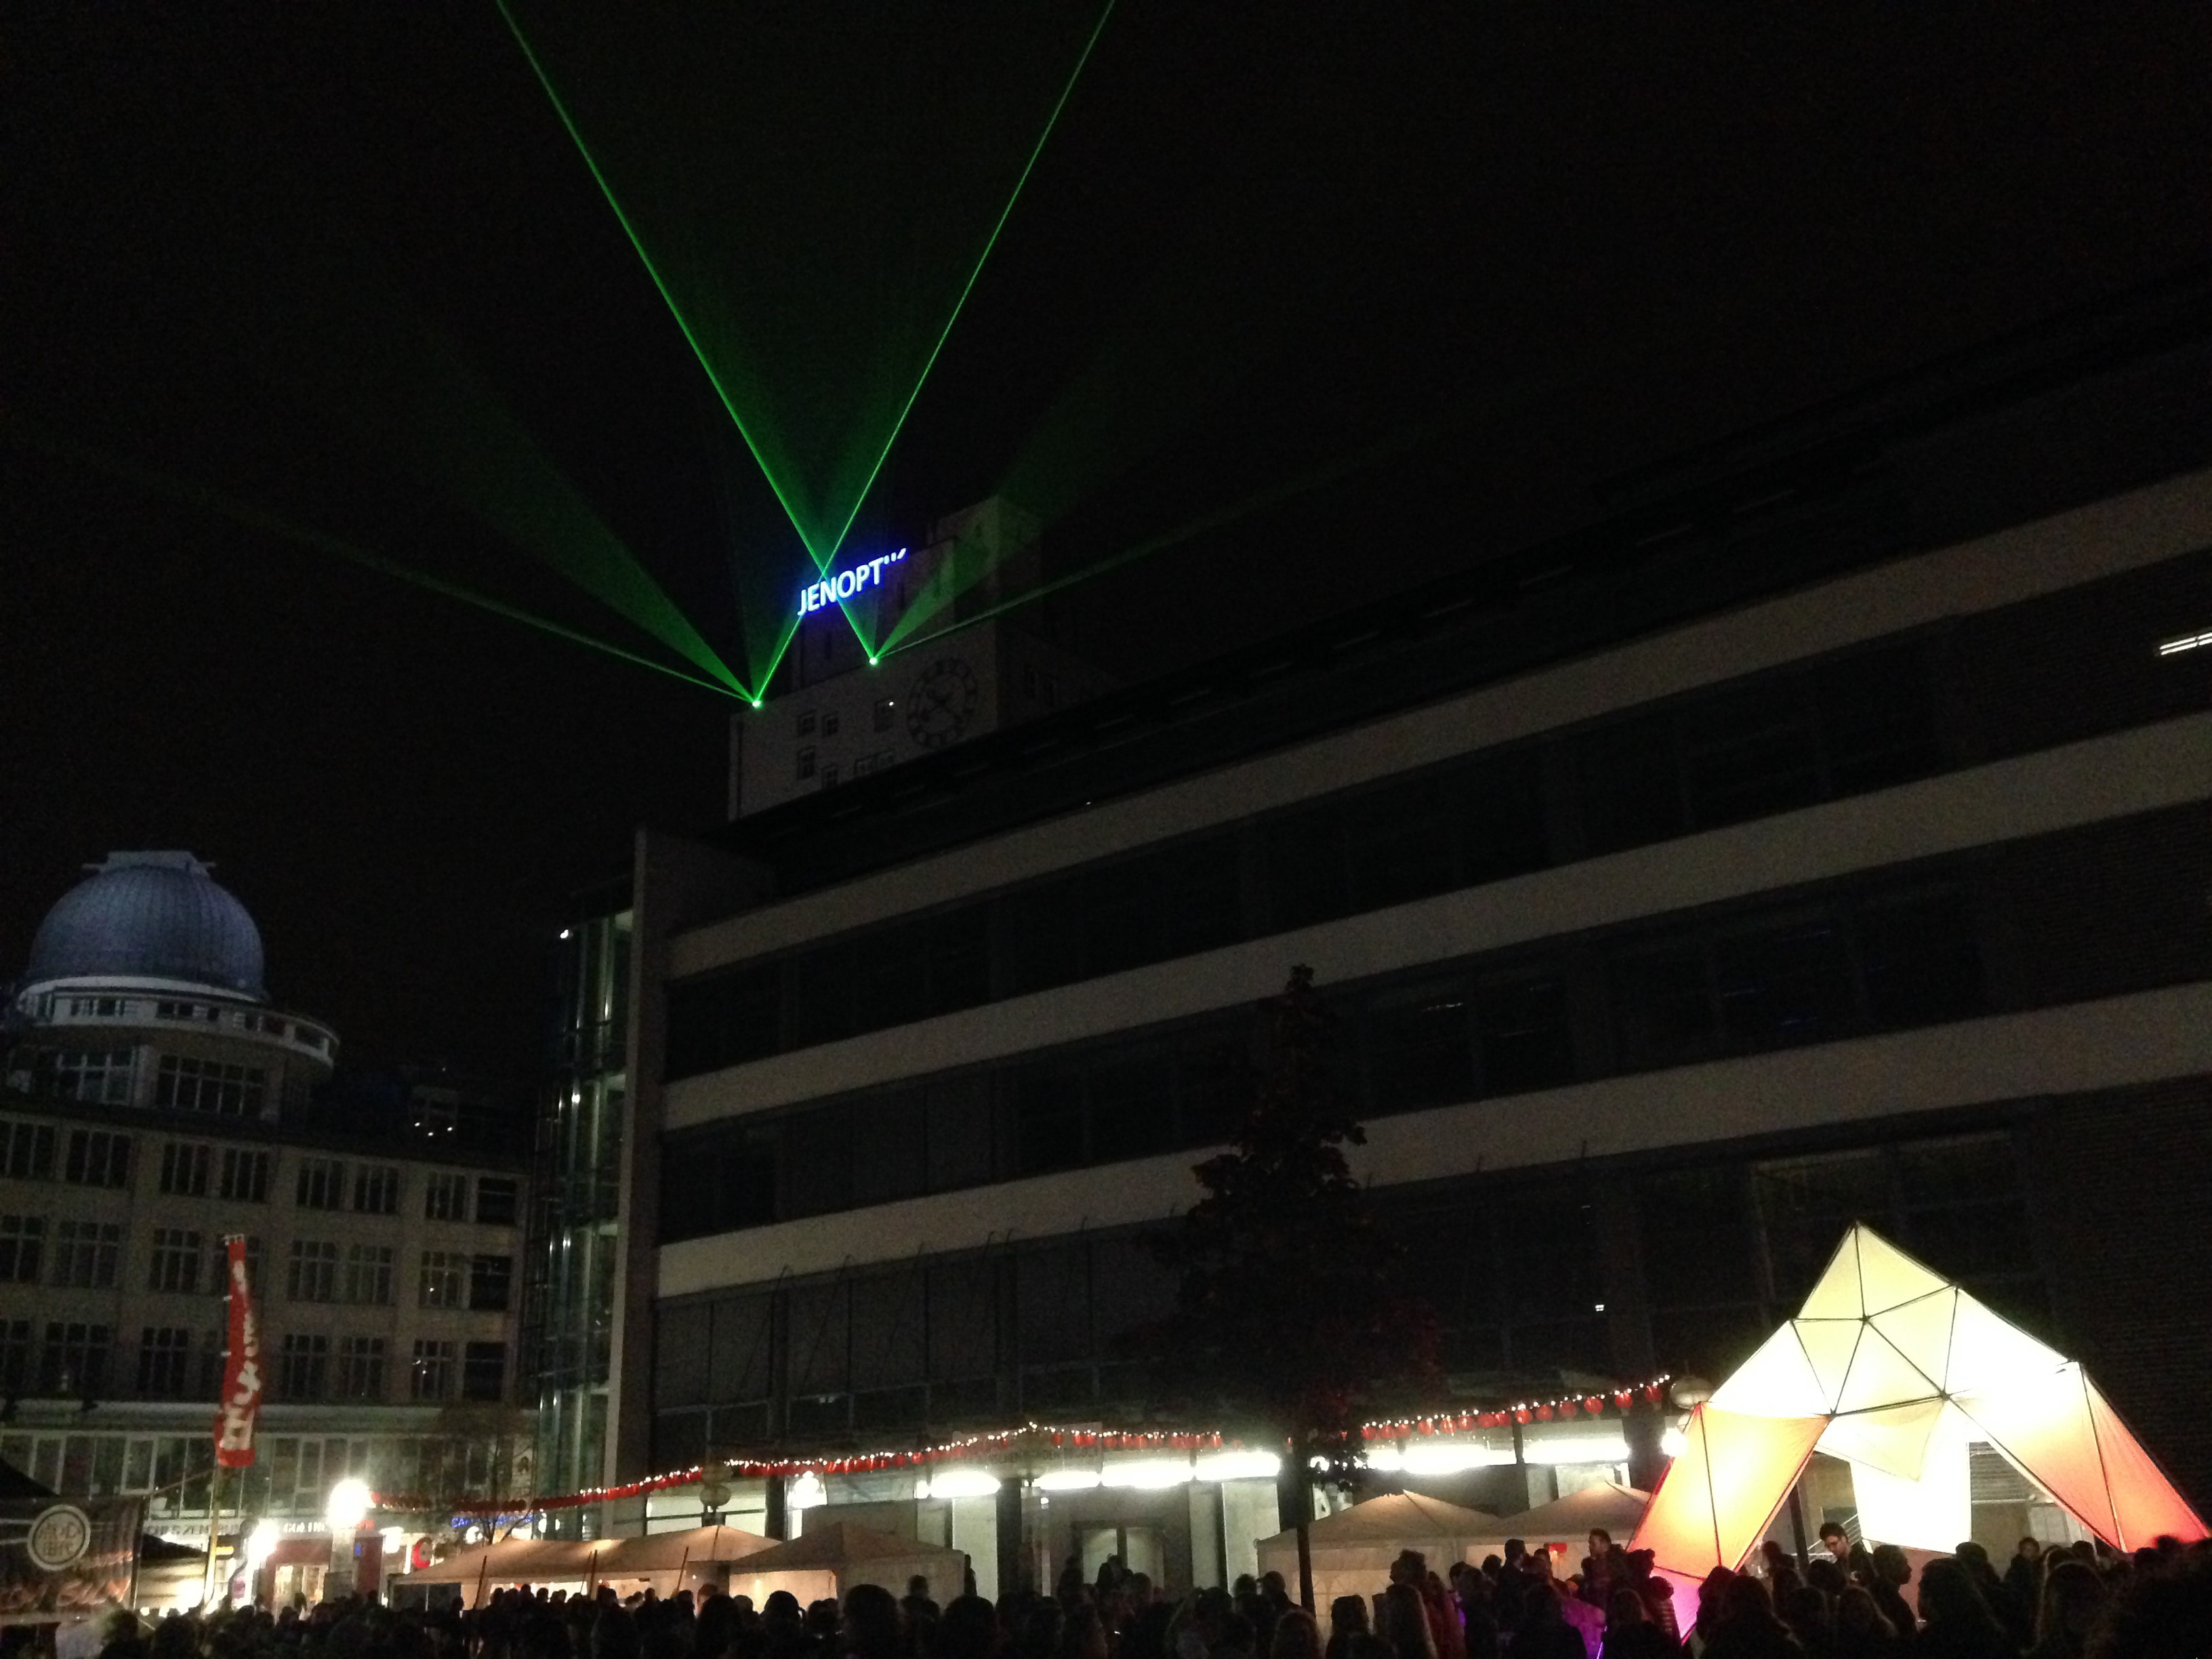 Light Catchers at City Visions Festival in Jena